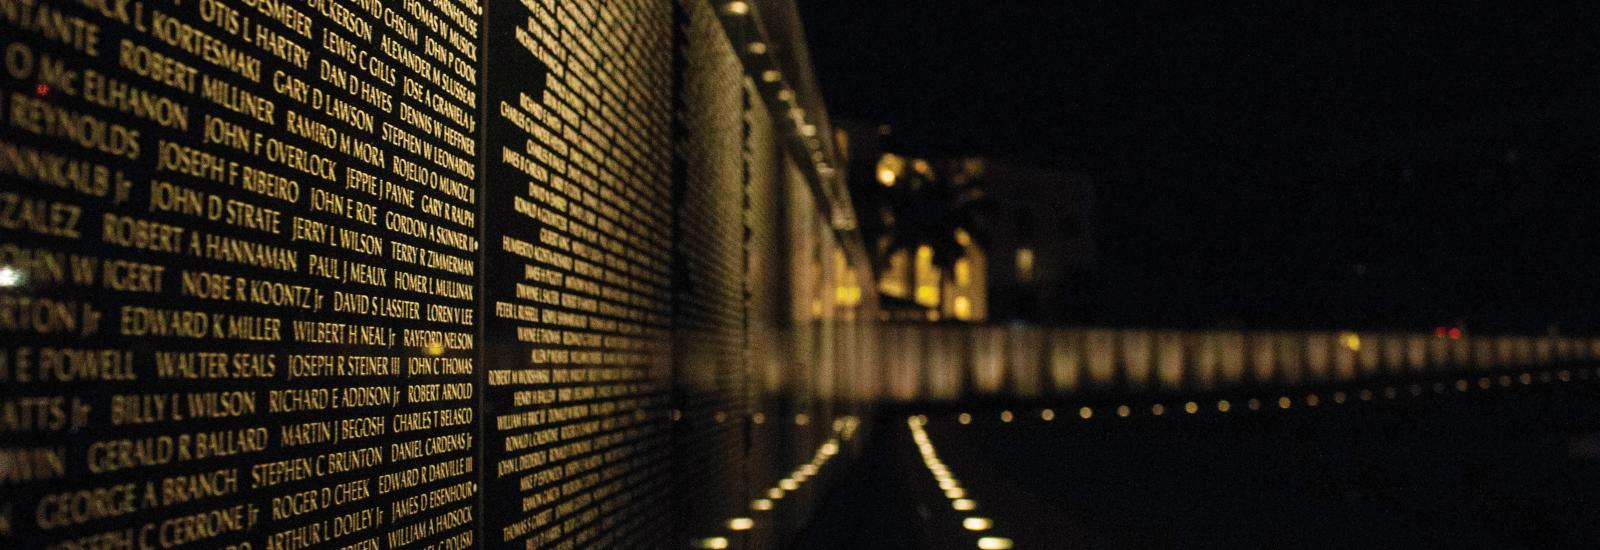 Vietnam Memorial Wall of SWFL